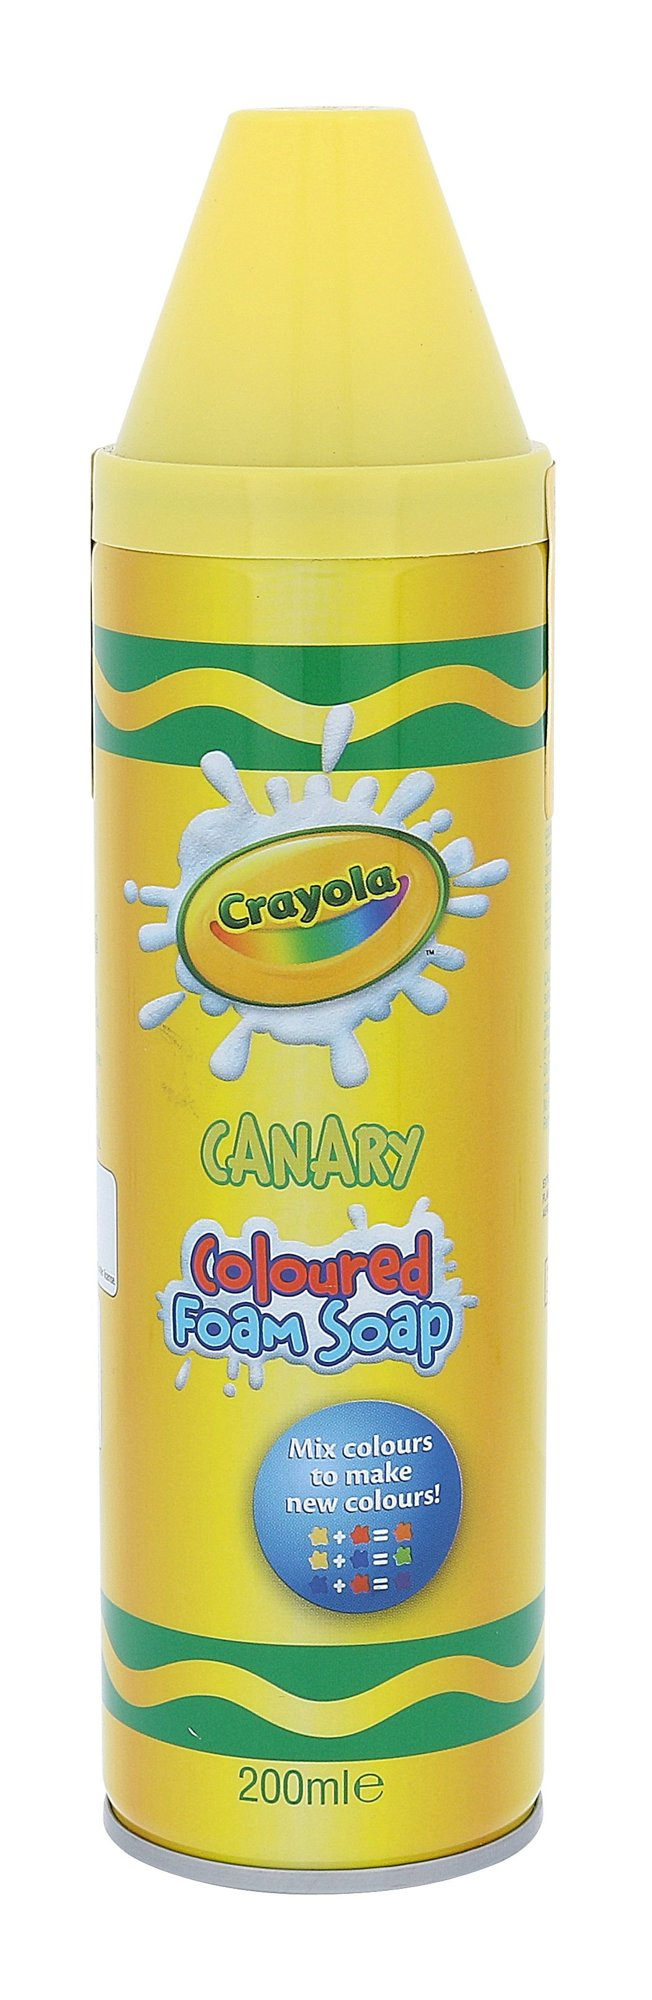 Crayola Coloured Foam Soap Cosmetic 200ml Canary